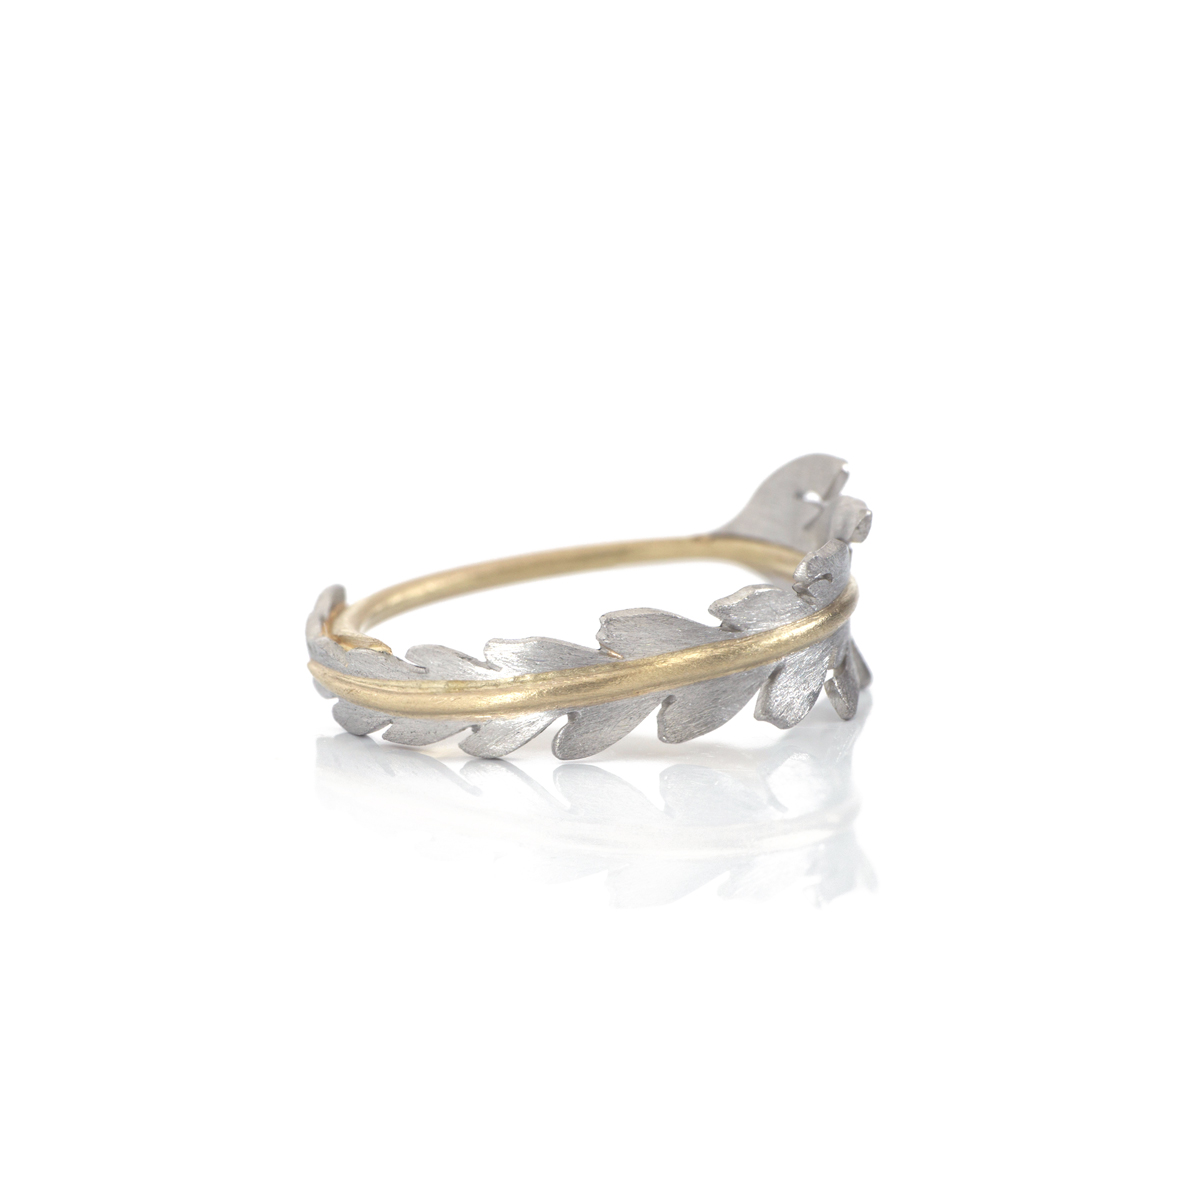 シダの指輪 fern ring in platinum and champagne gold